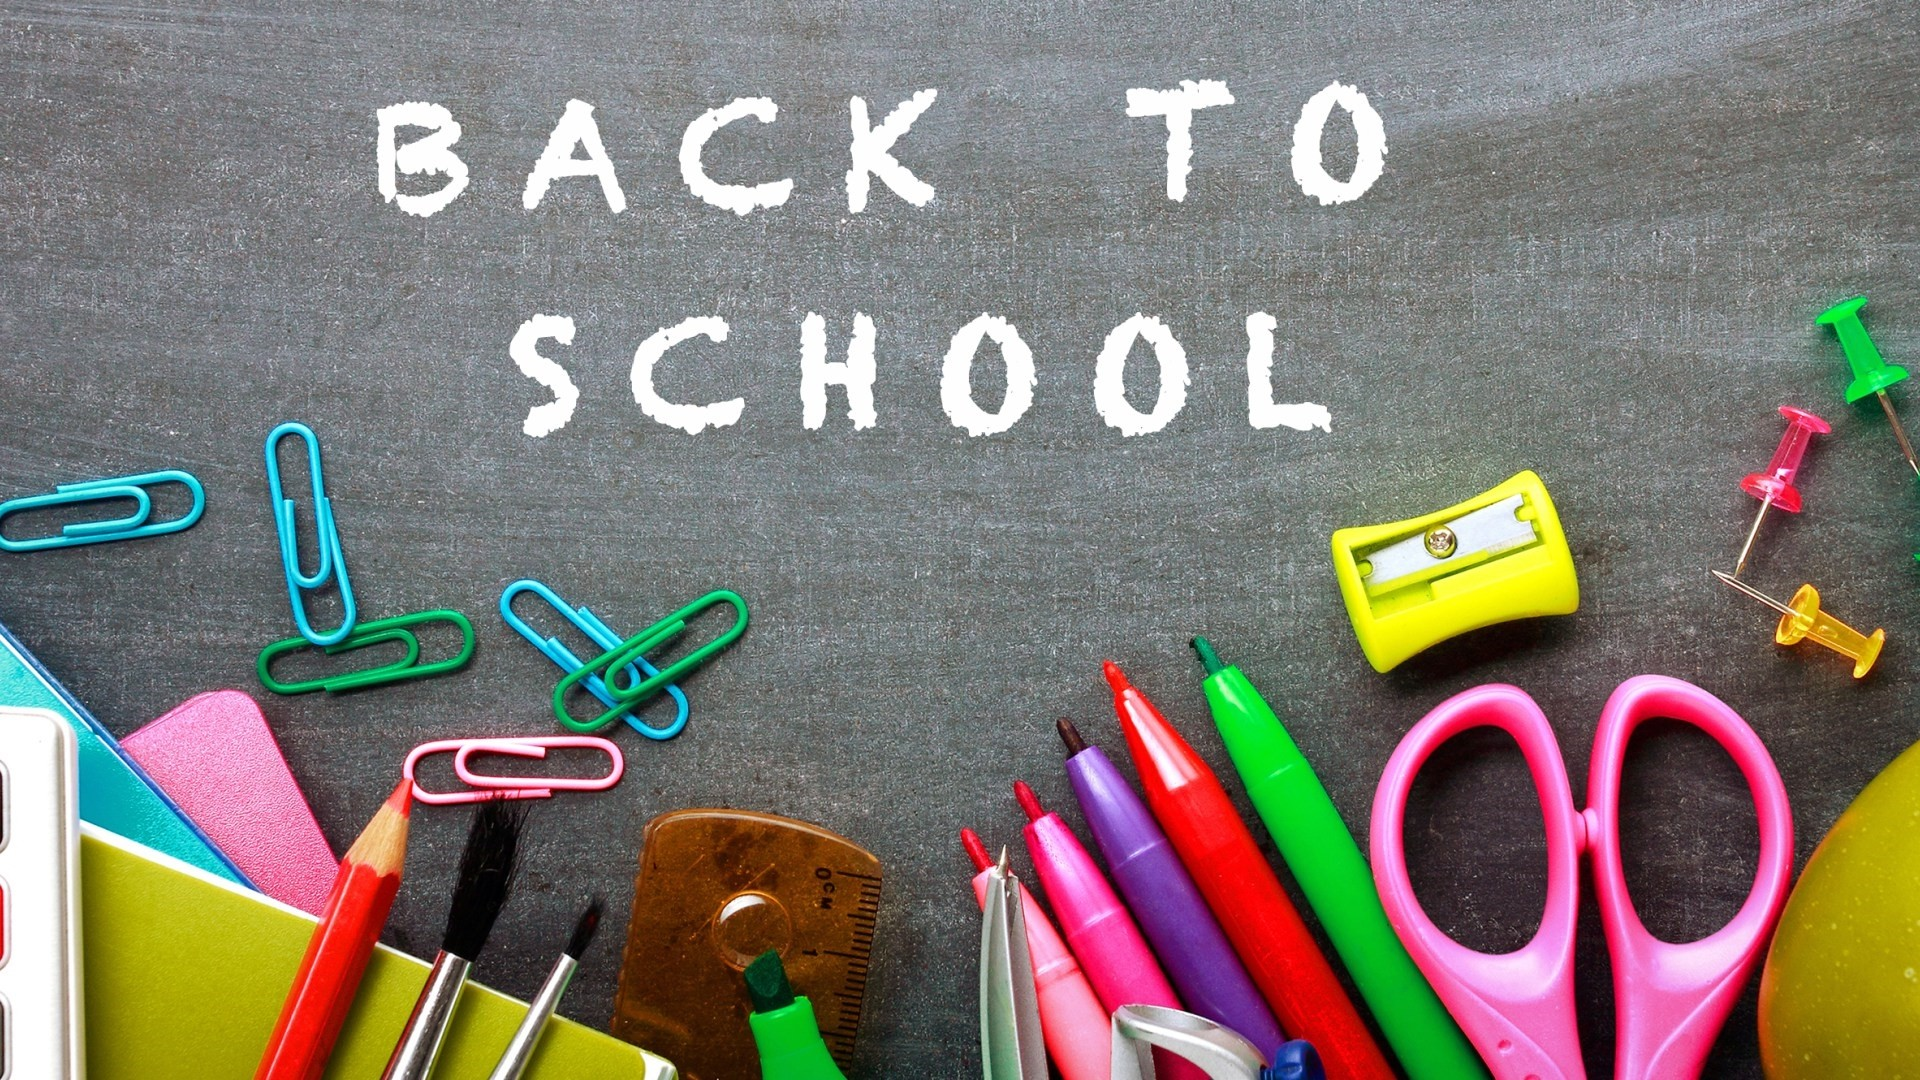 Back To School High Quality